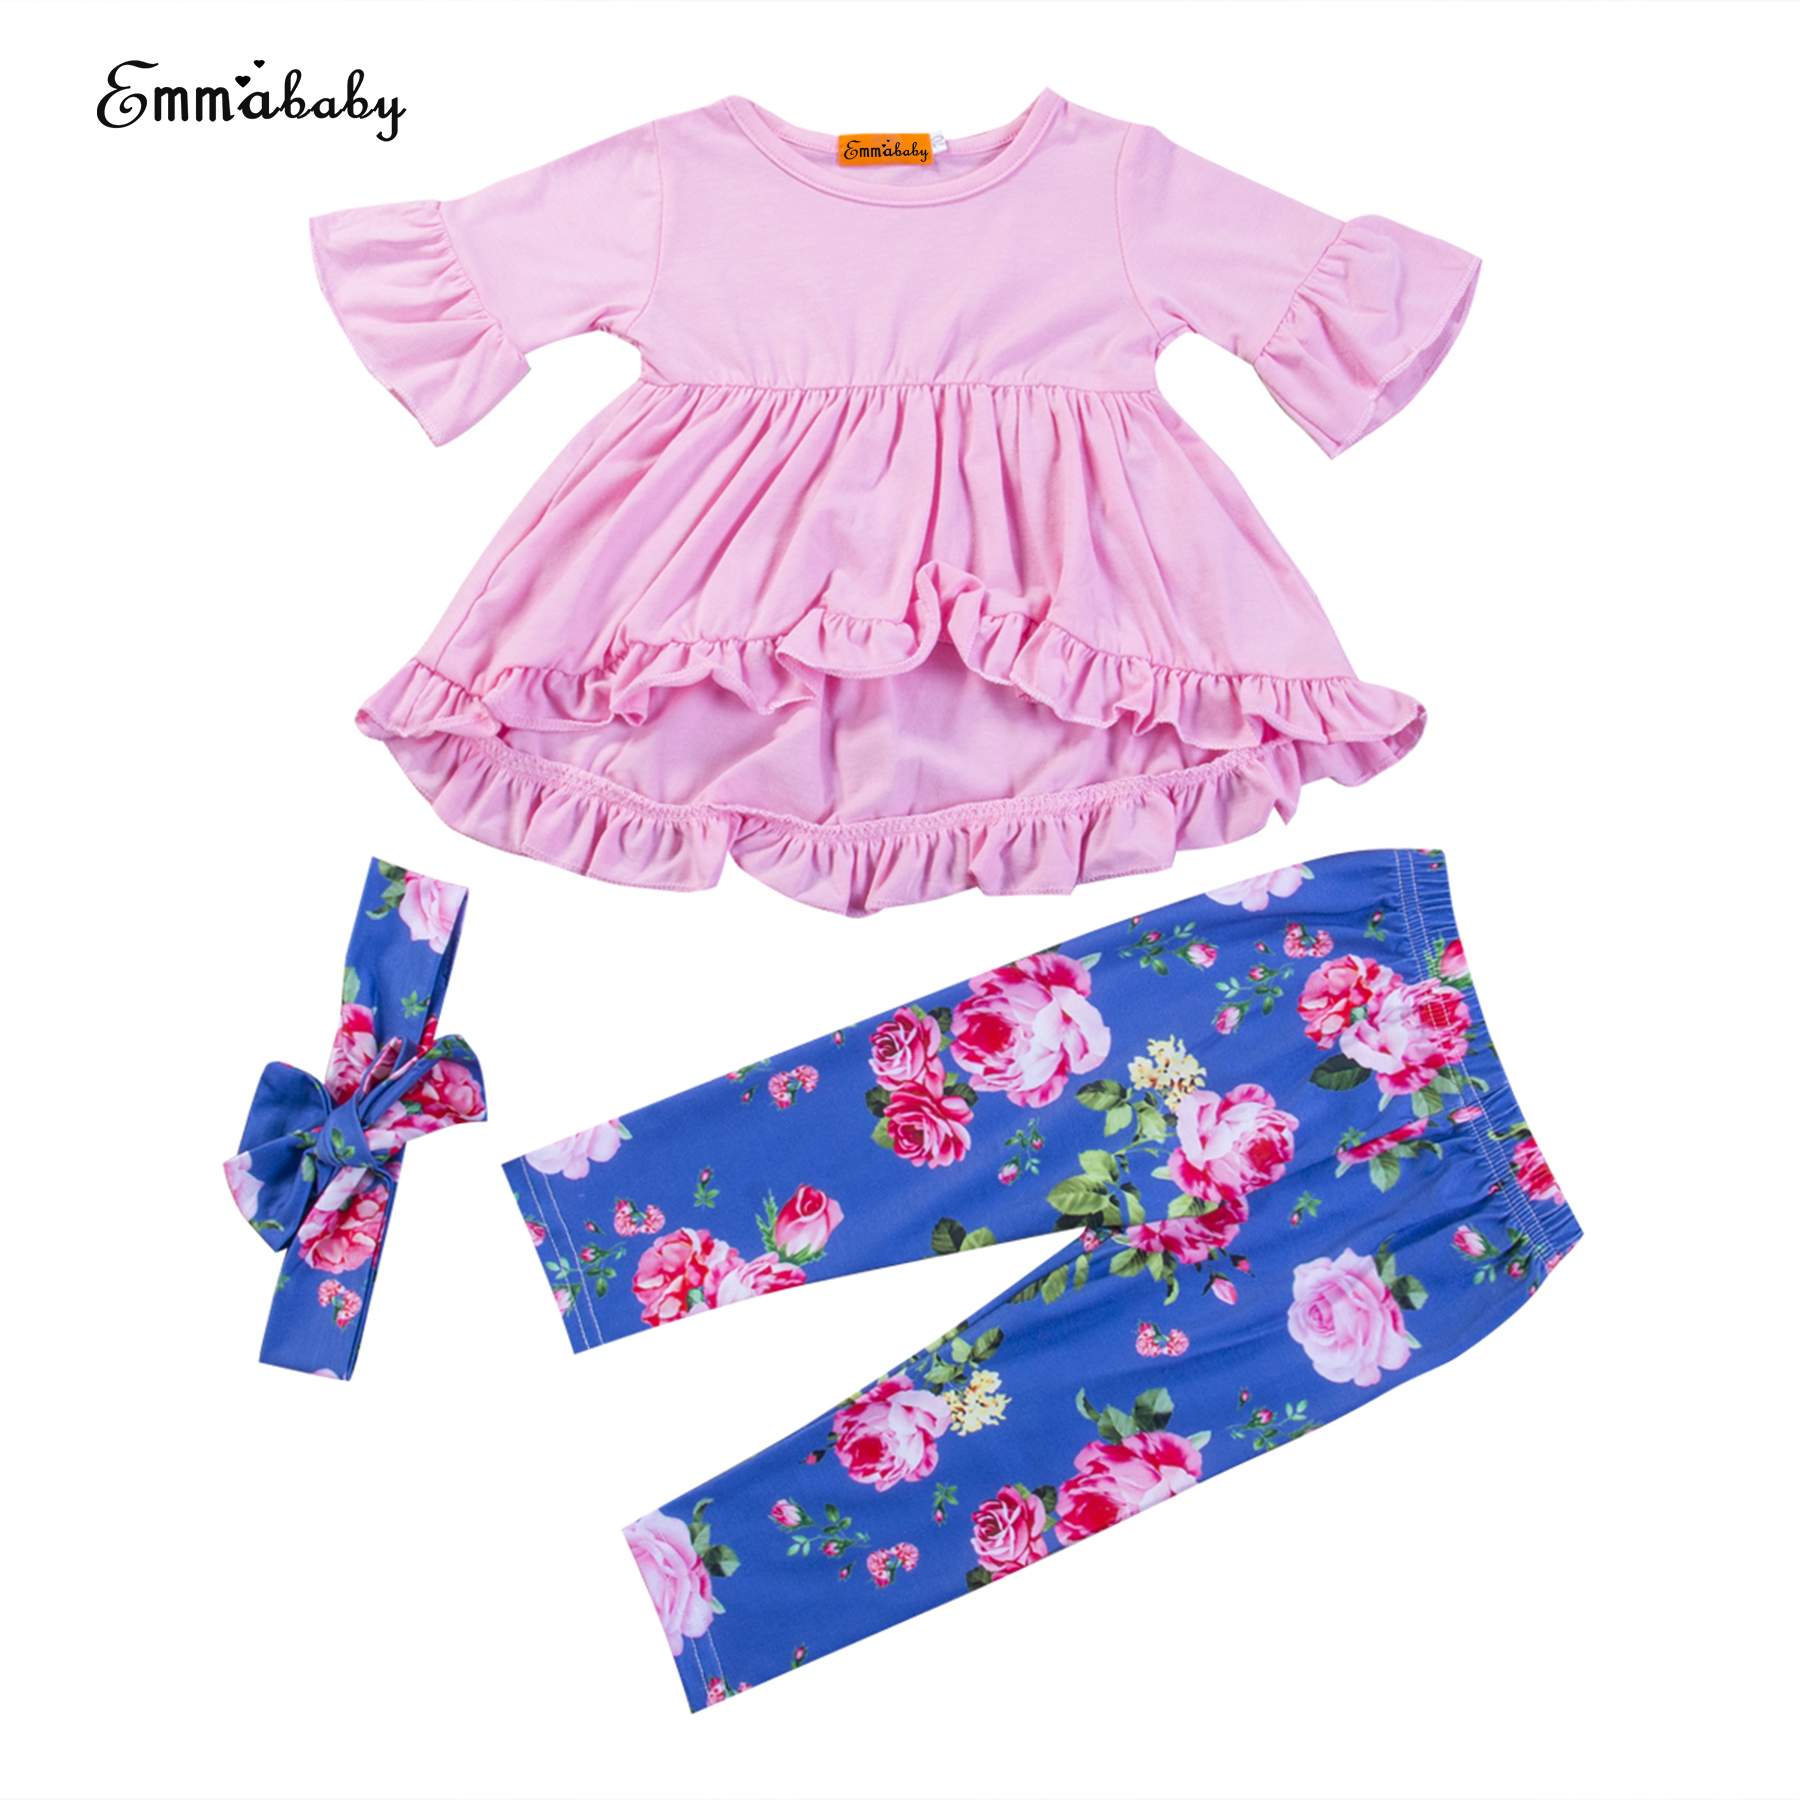 d99fc6e2f0908 2017 3pcs Infant Toddler Kids Baby Girl Clothes Set Tunic Top Shirt Floral  Leggings Pants Headband 3Pcs Outfits girls clothes-in Clothing Sets from  Mother ...